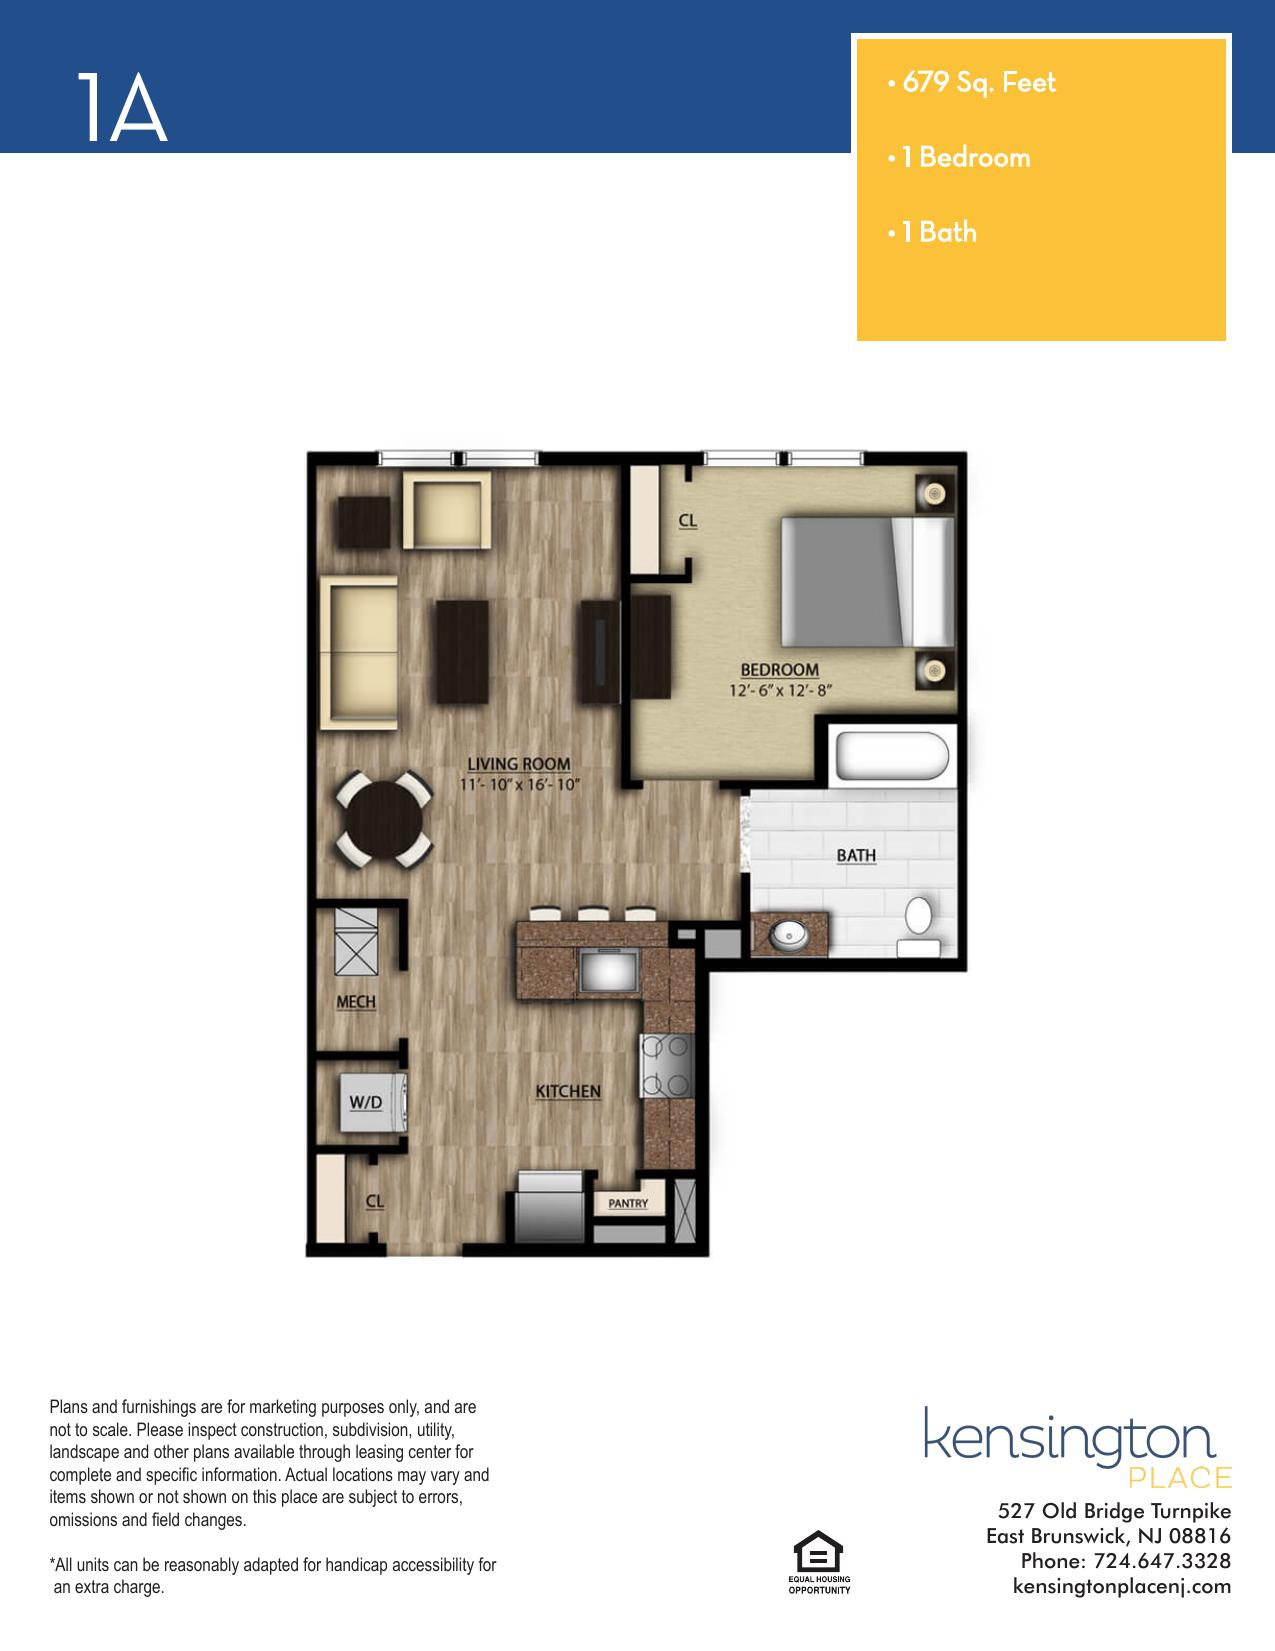 Kensington Place Apartment Floor Plan 1A